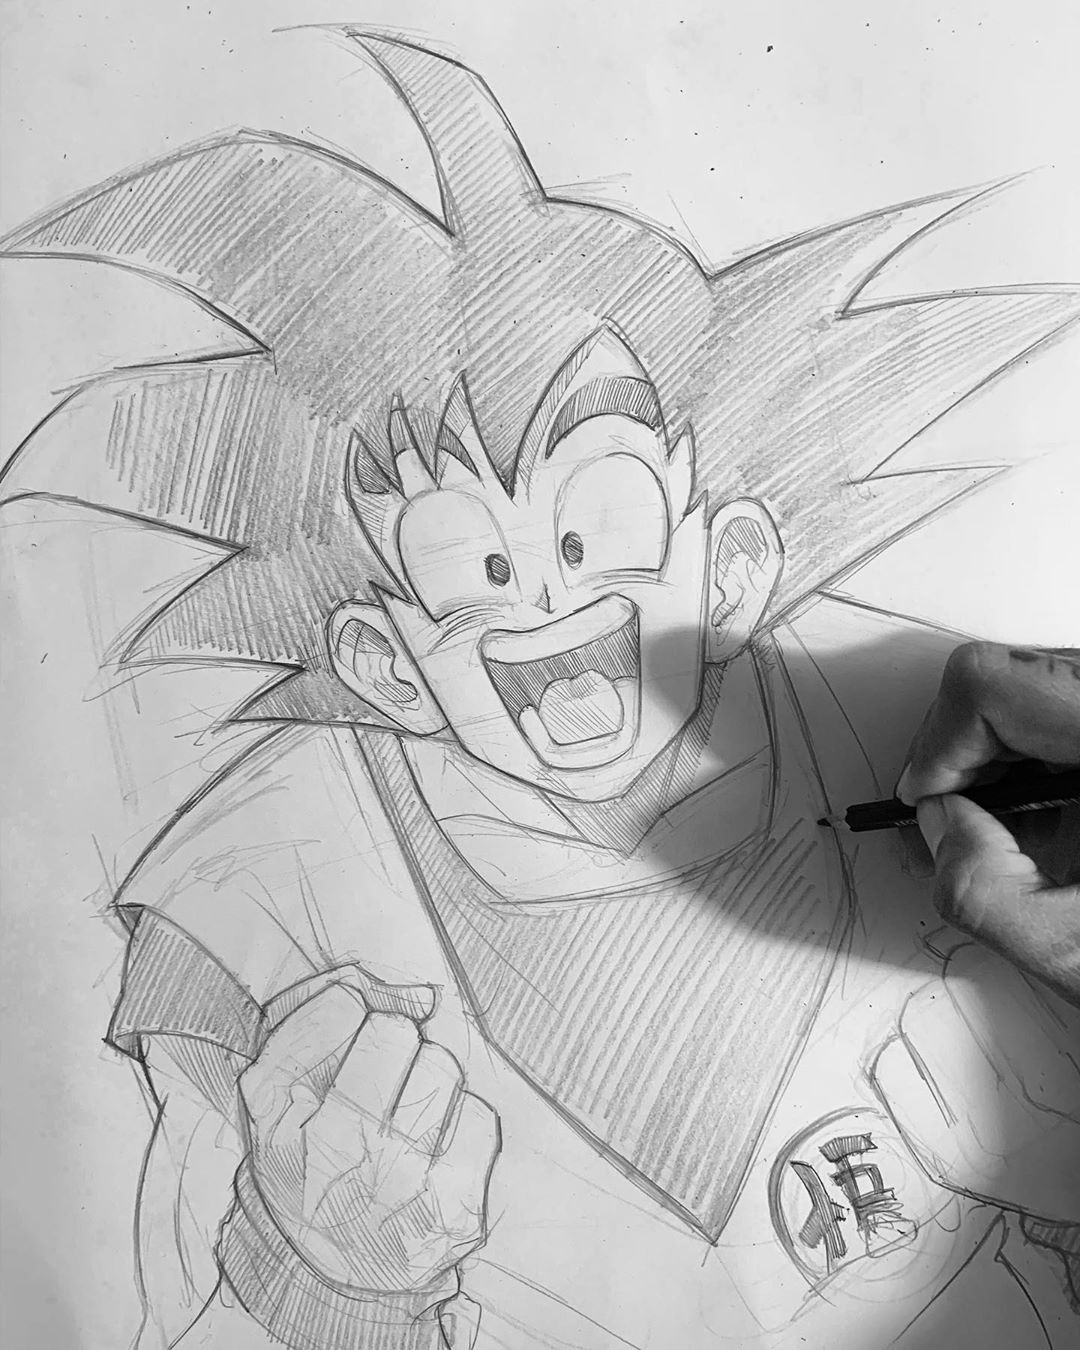 Pencil Sketch Artist Efrain Malo Drawing Artwoonz In 2020 Dragon Ball Art Anime Drawings Sketches Dragon Ball Wallpapers